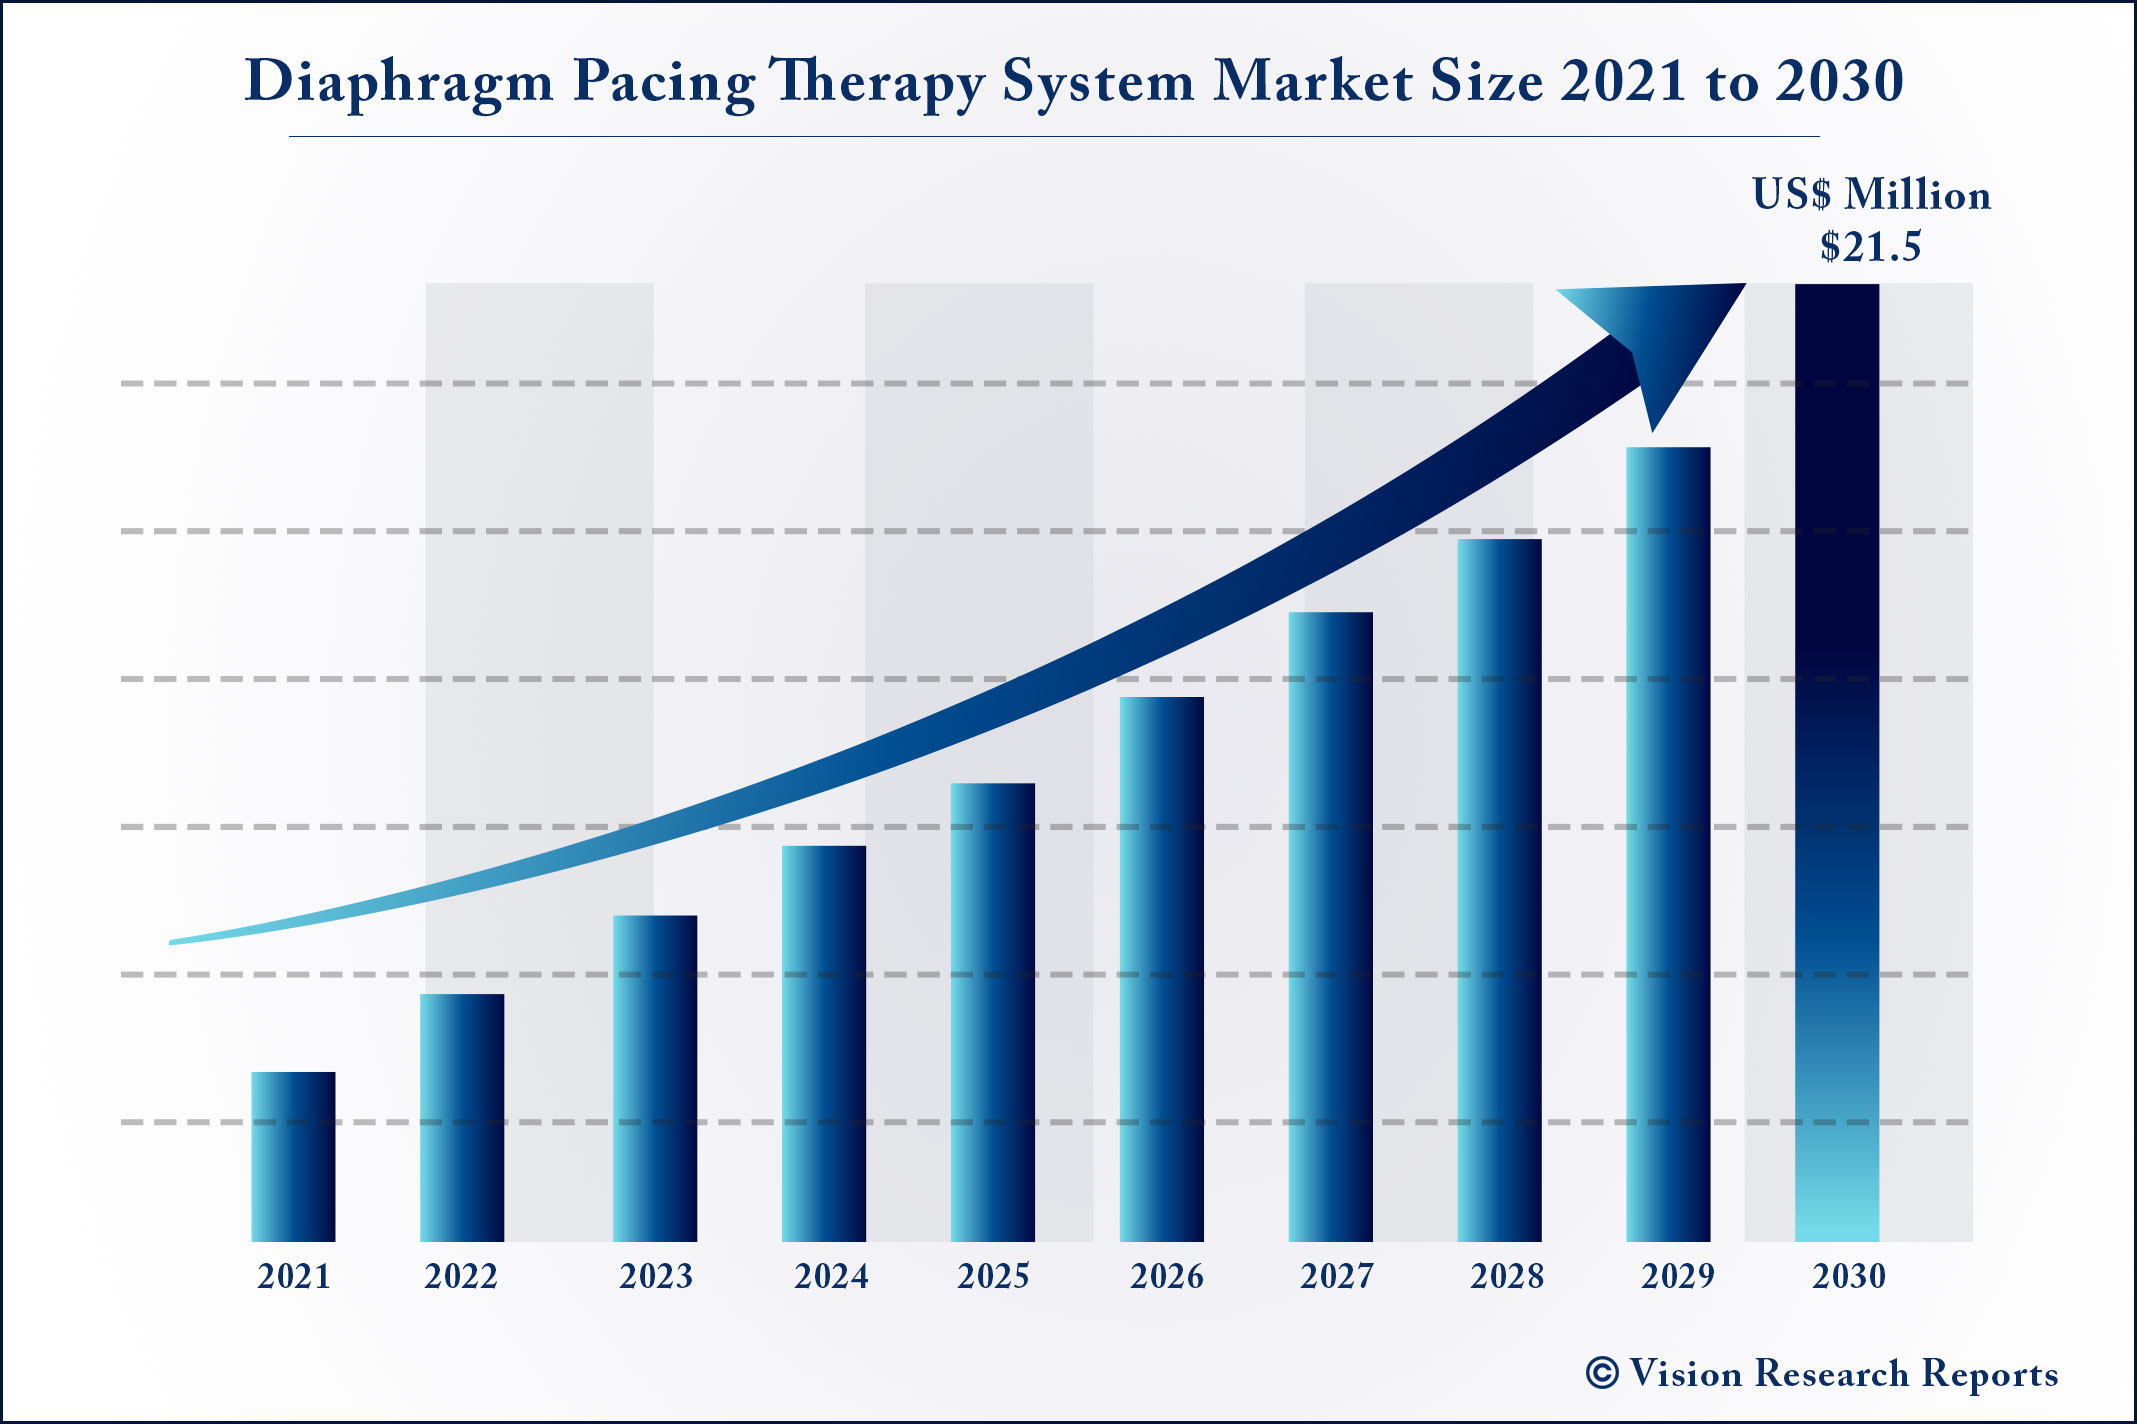 Diaphragm Pacing Therapy System Market Size 2021 to 2030